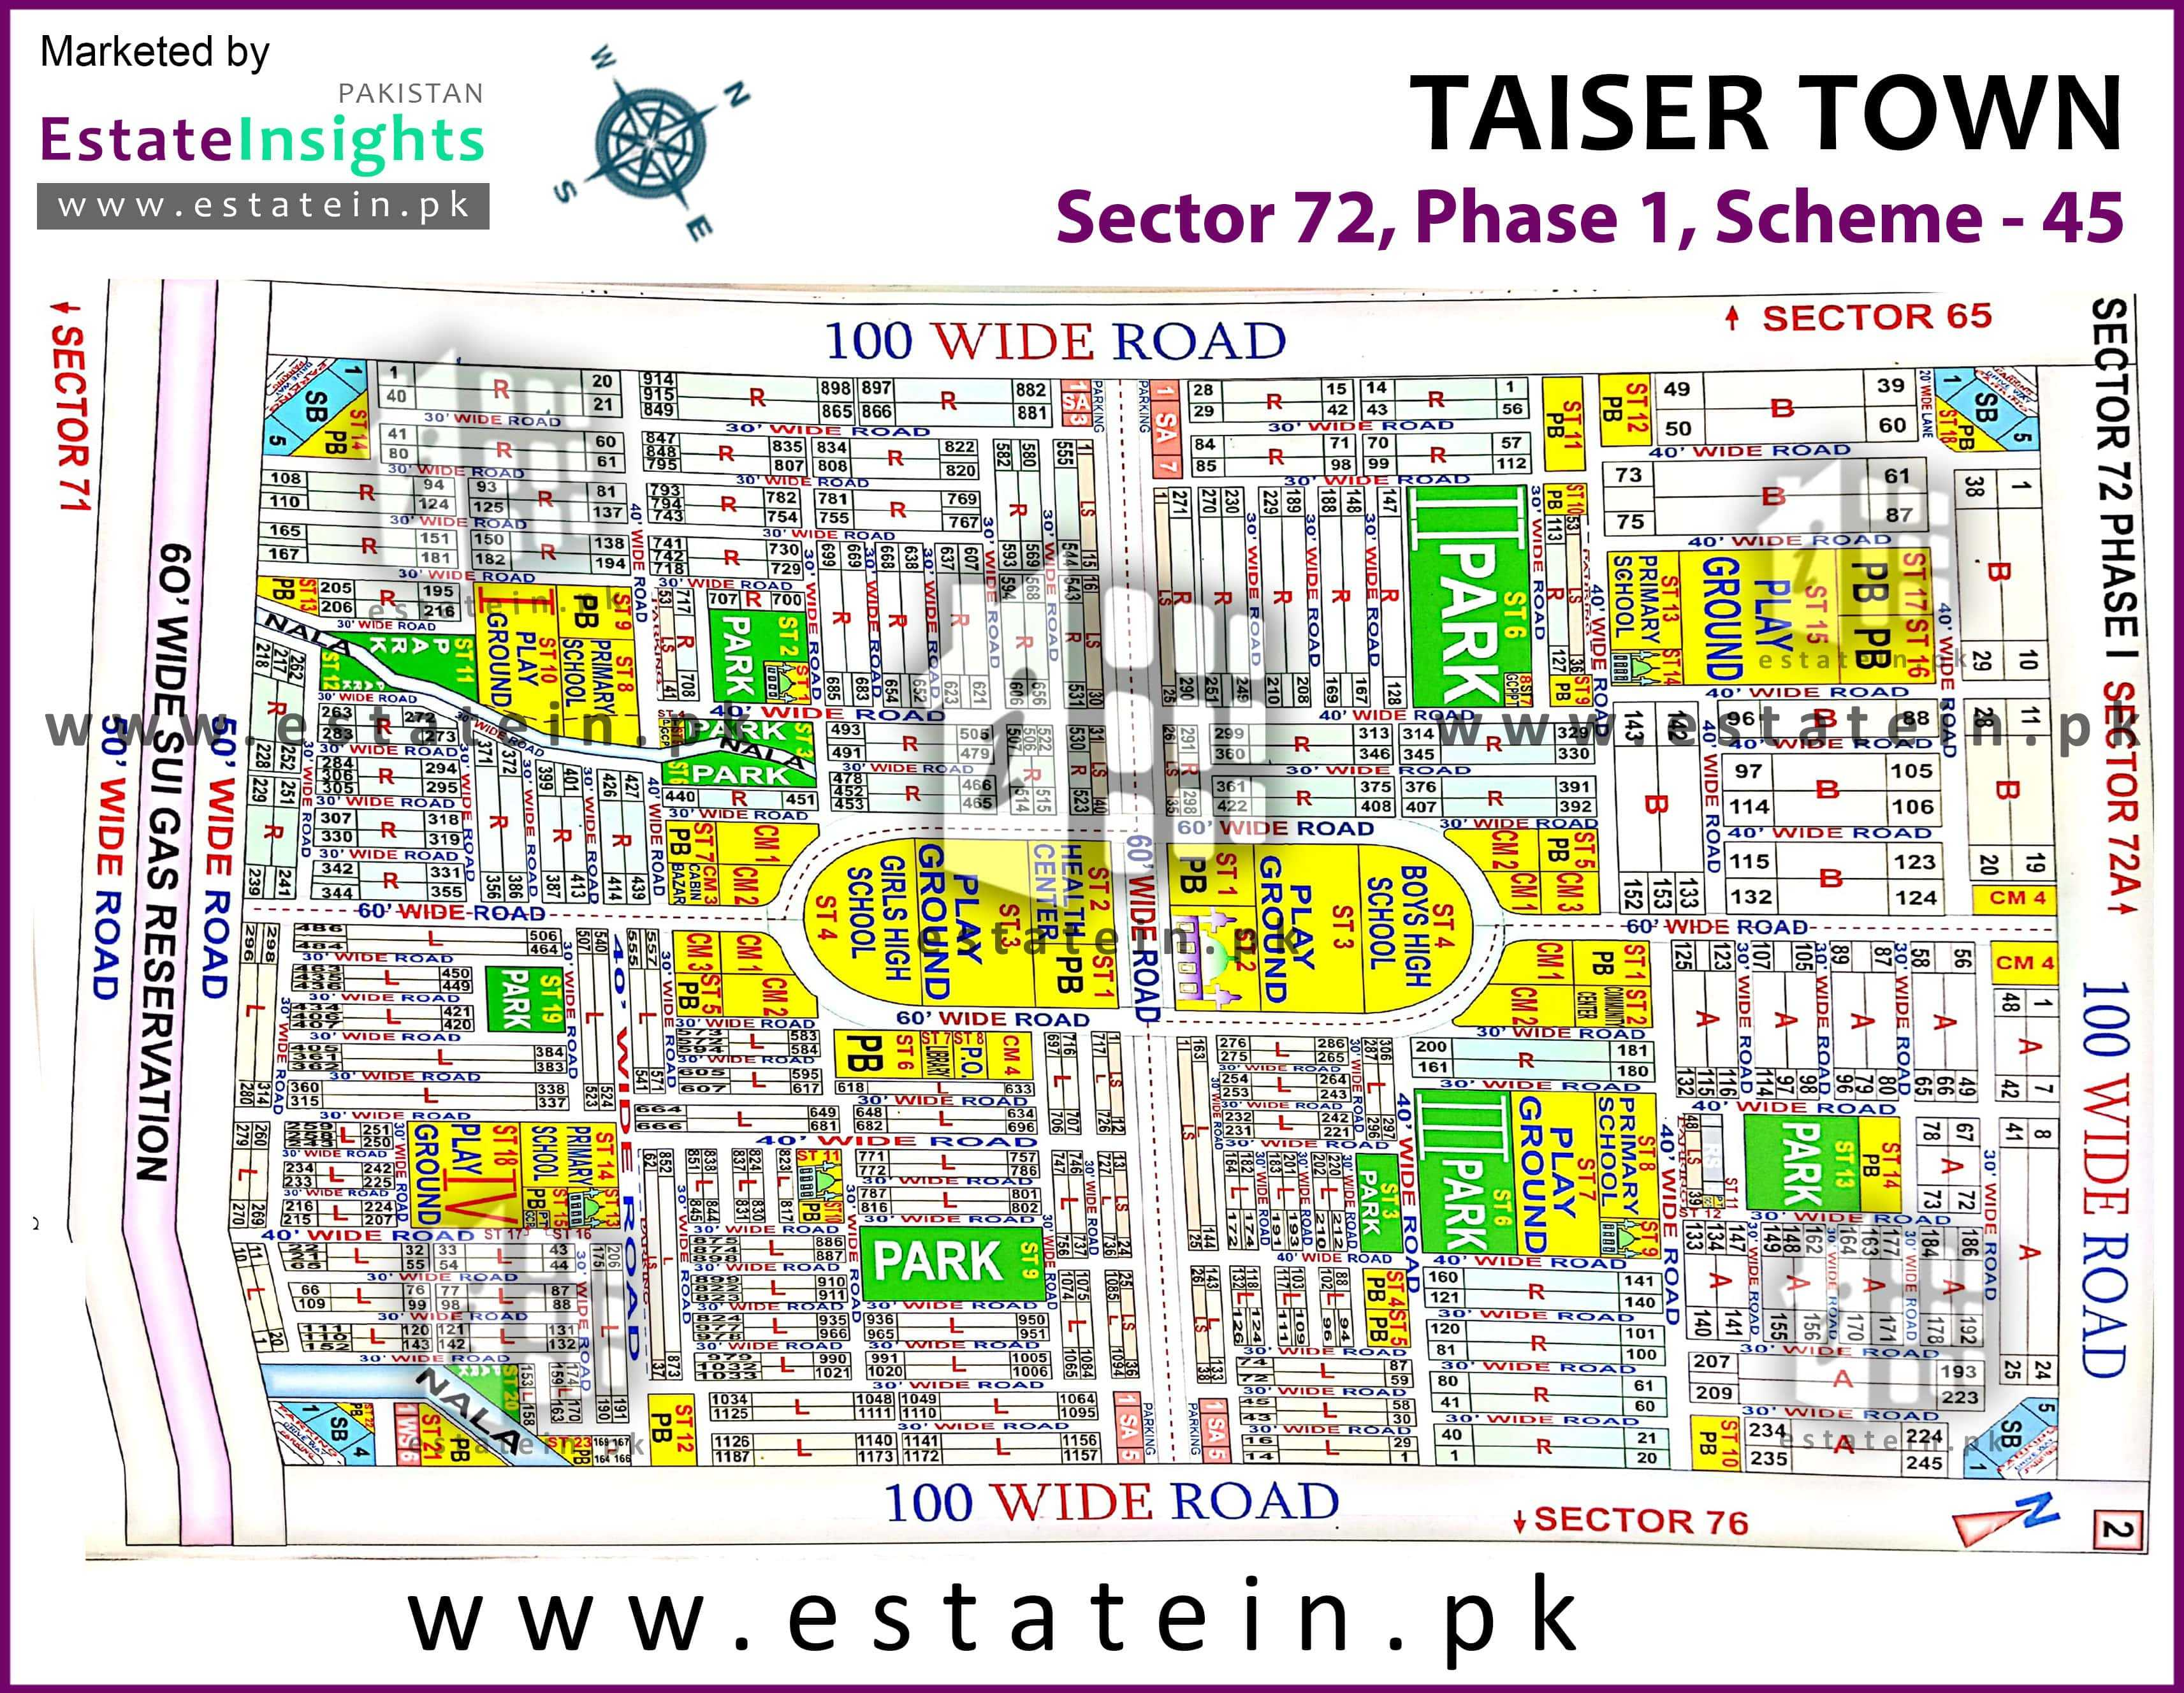 Site Plan of Sector 72 of Taiser Town Phase I